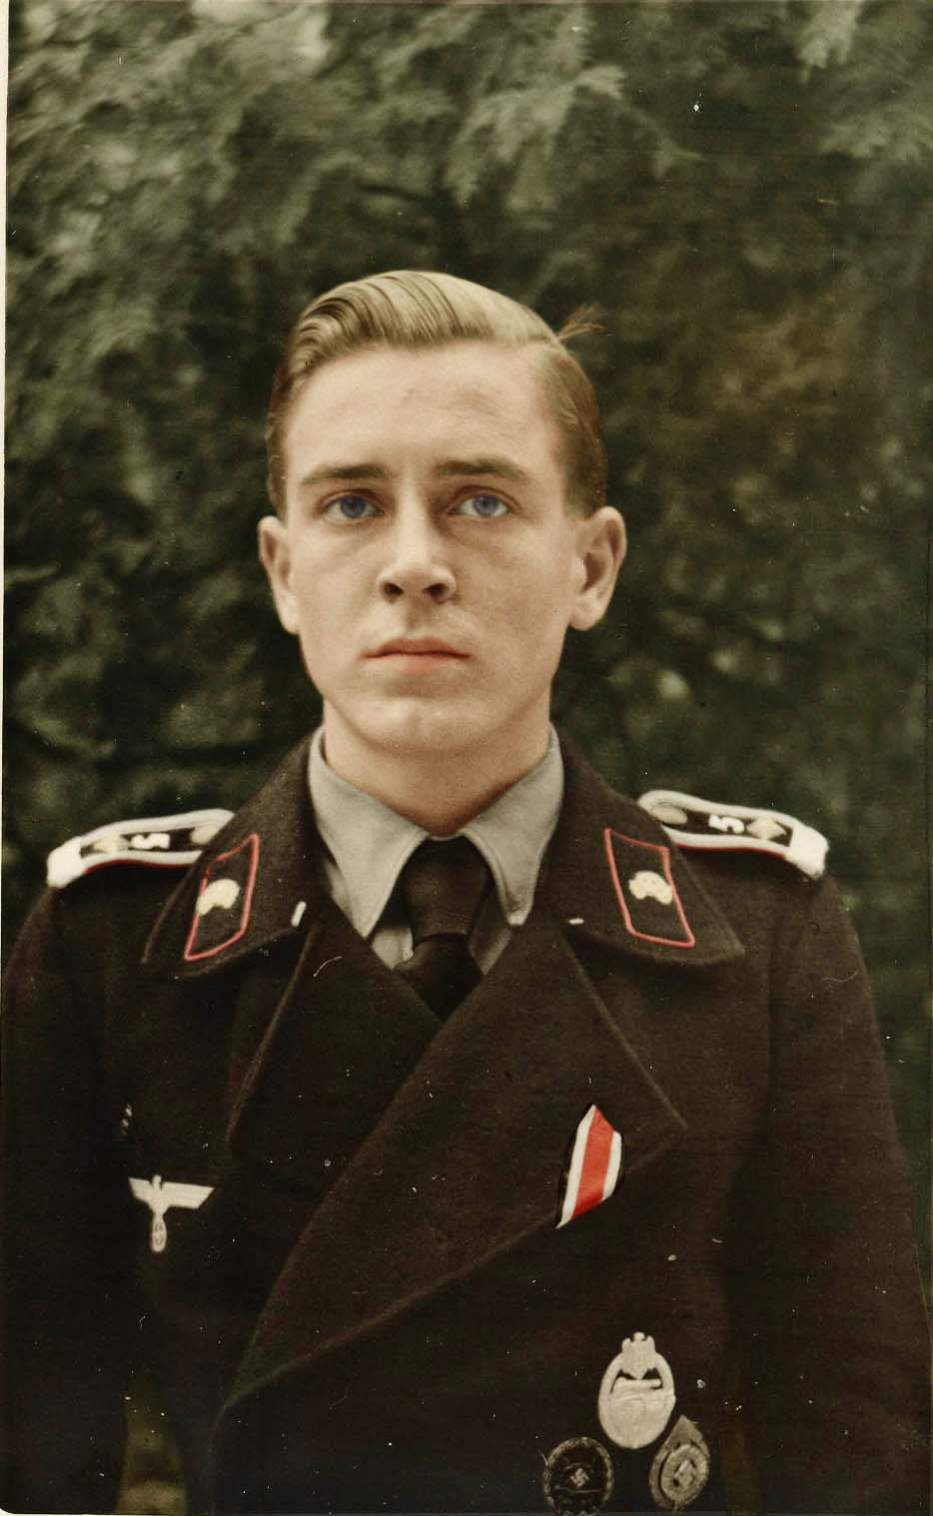 Pin By Raingun On Some New Staff Pinterest Wwii German Soldiers